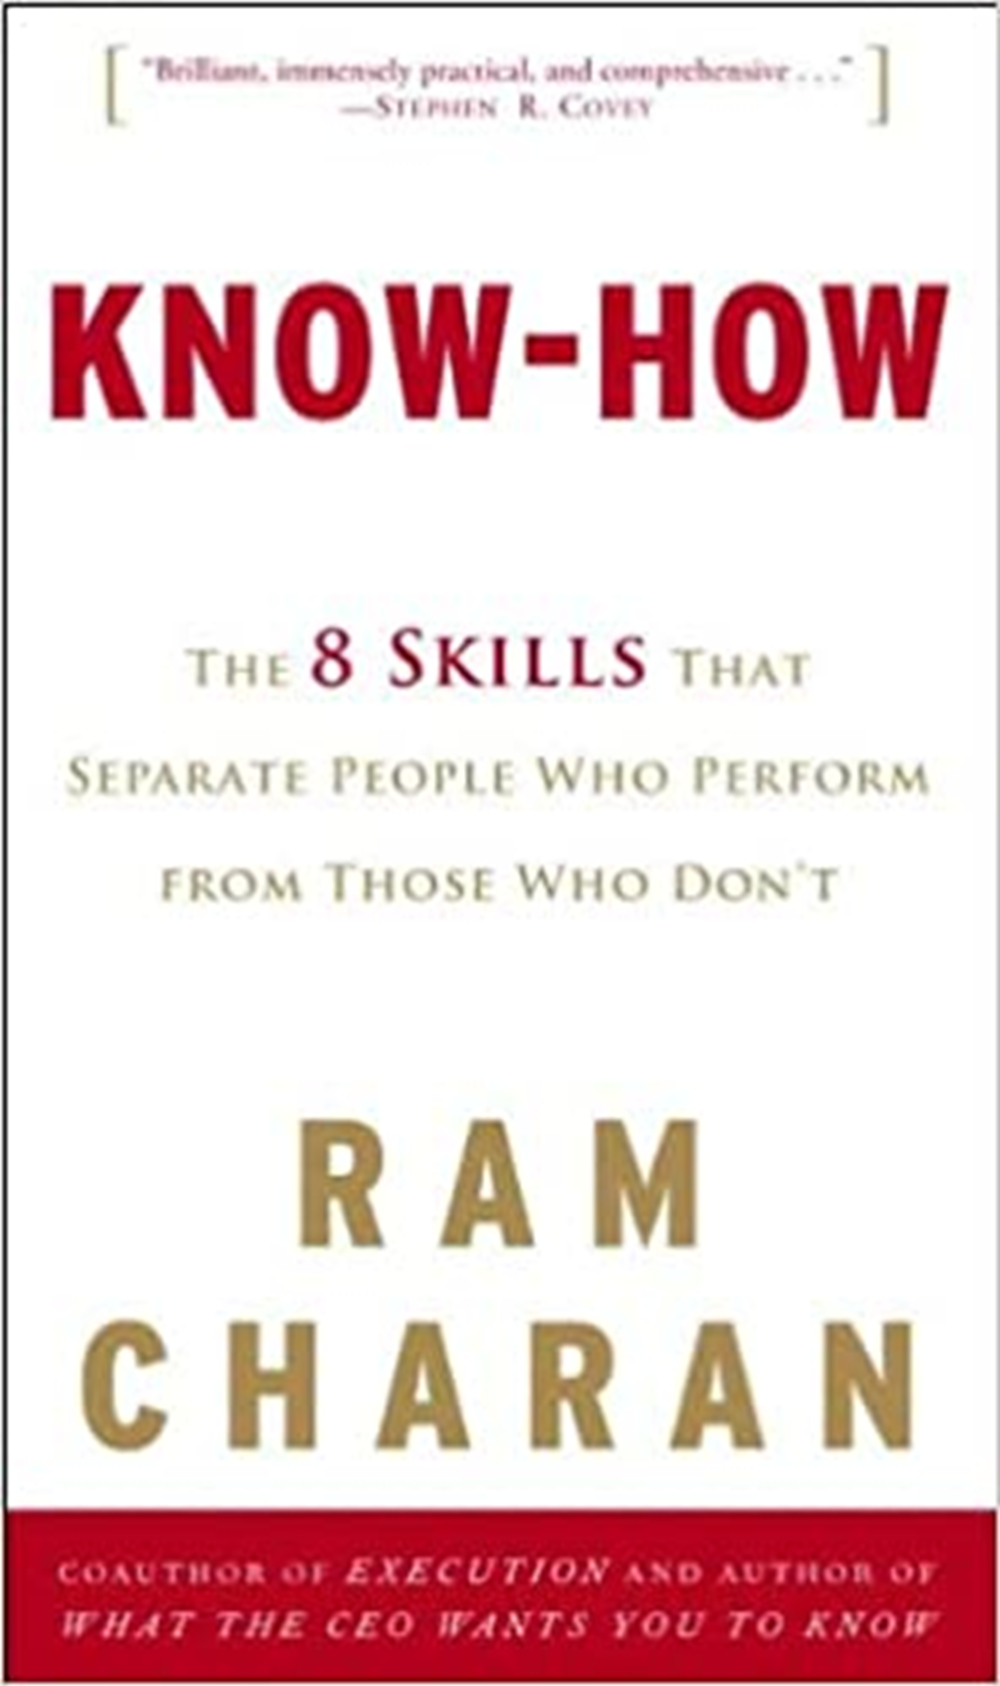 Know-How The 8 Skills That Separate People Who Perform from Those Who Don't